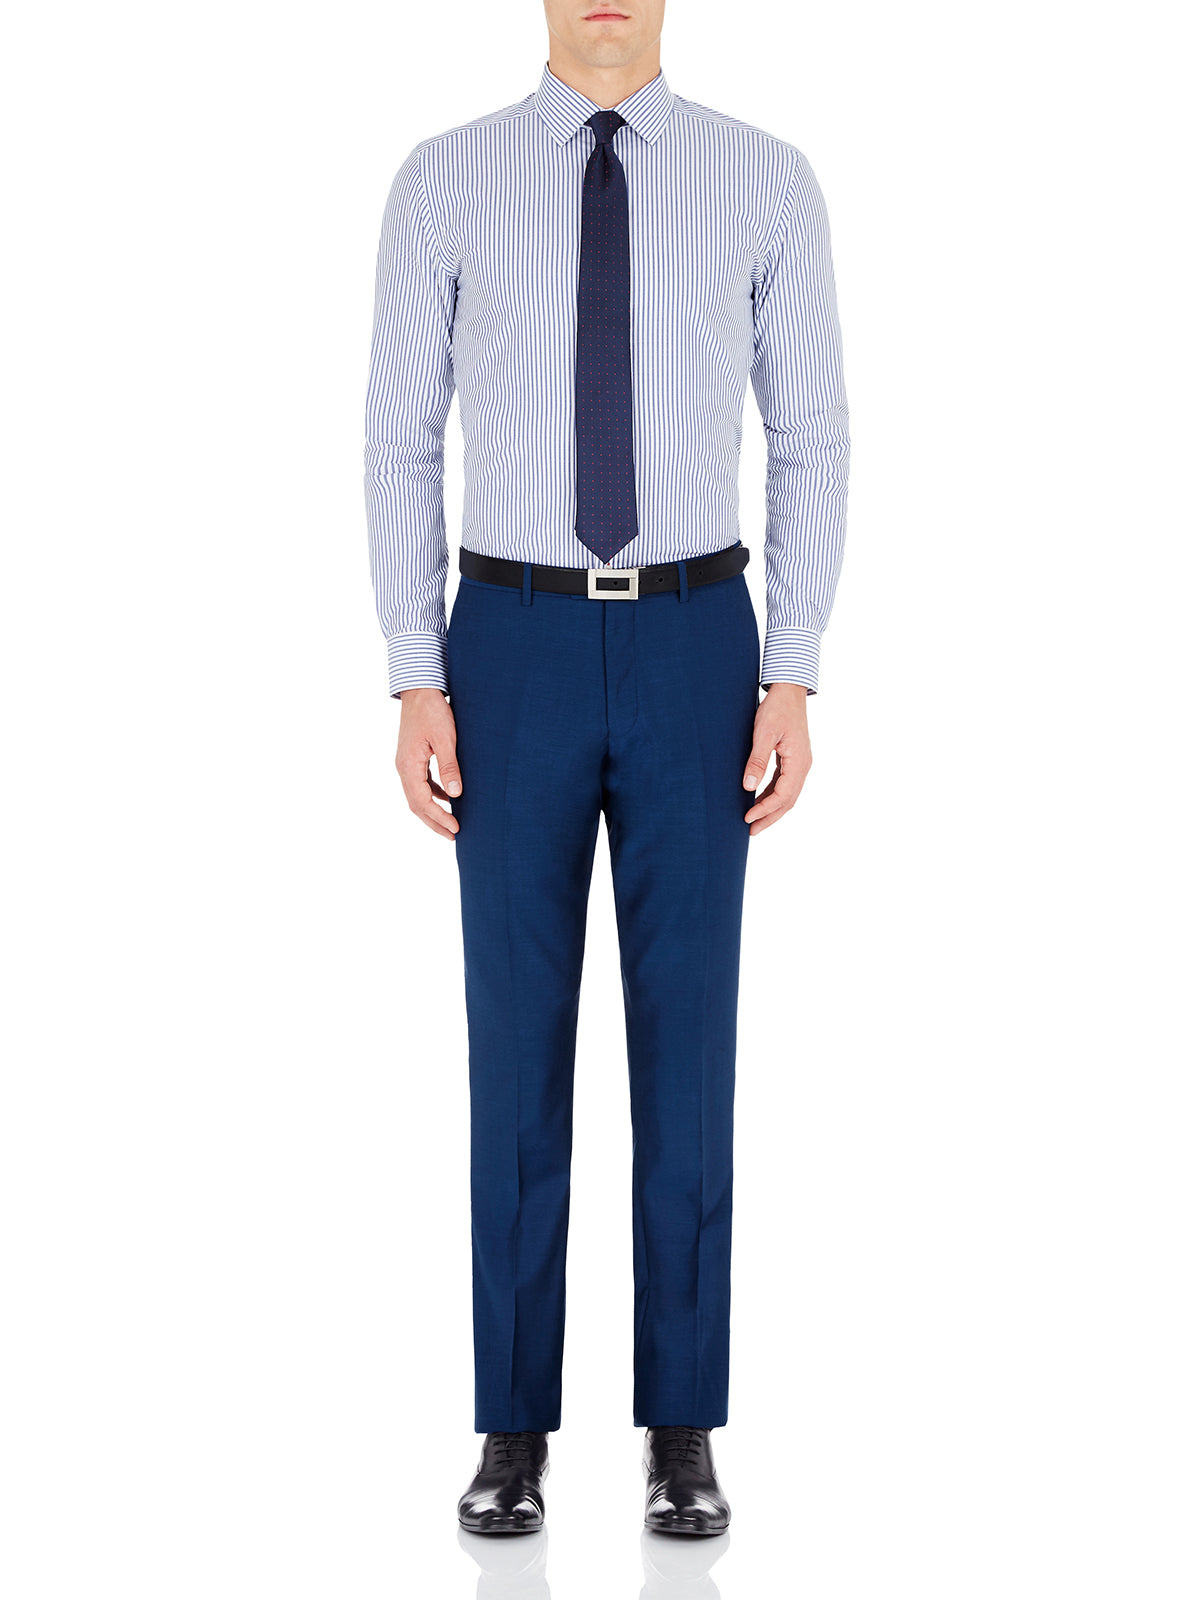 T22 SUIT TROUSERS NAVY